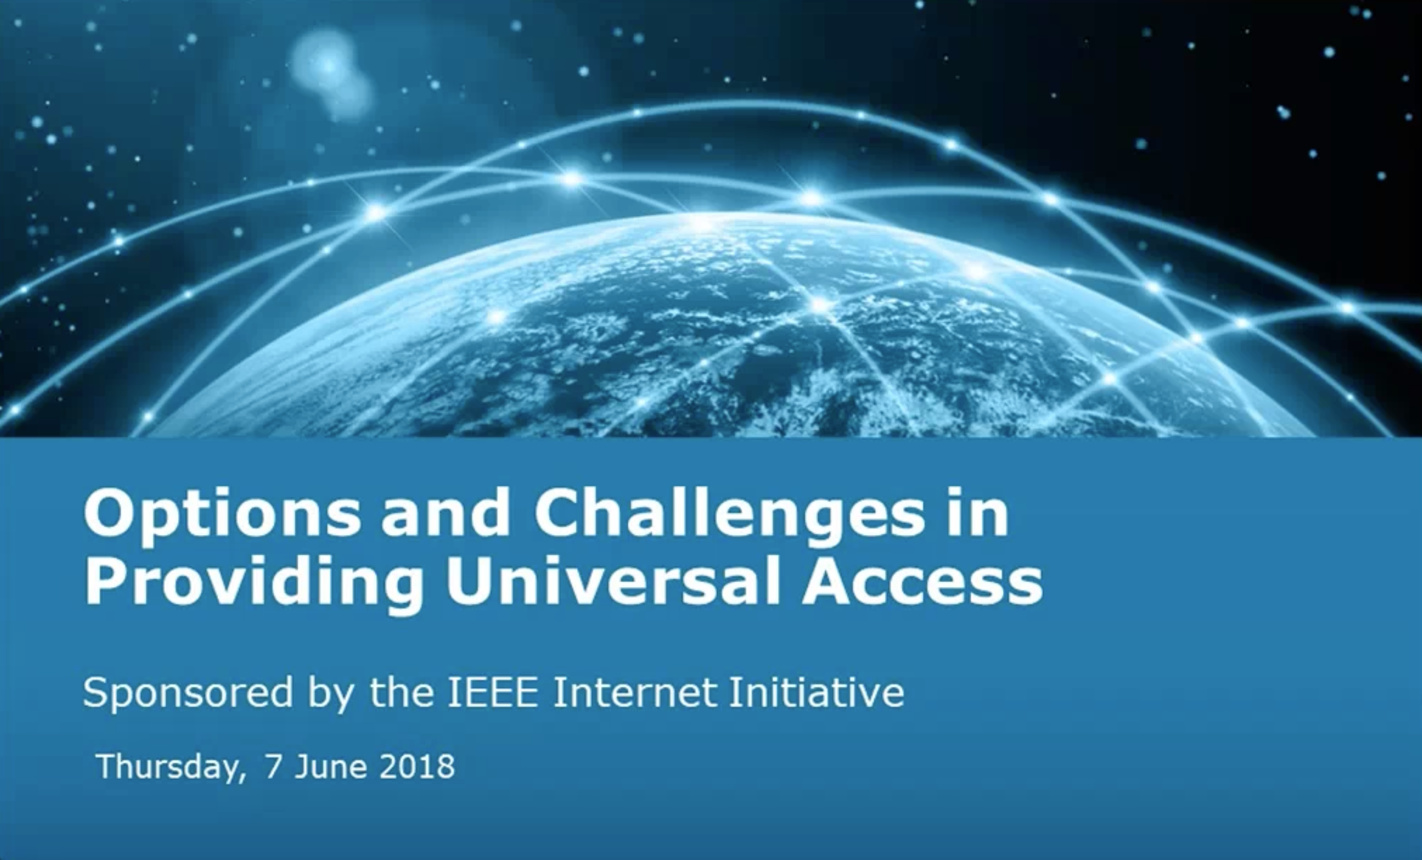 Options and Challenges in Providing Universal Access - IEEE Internet Initiative